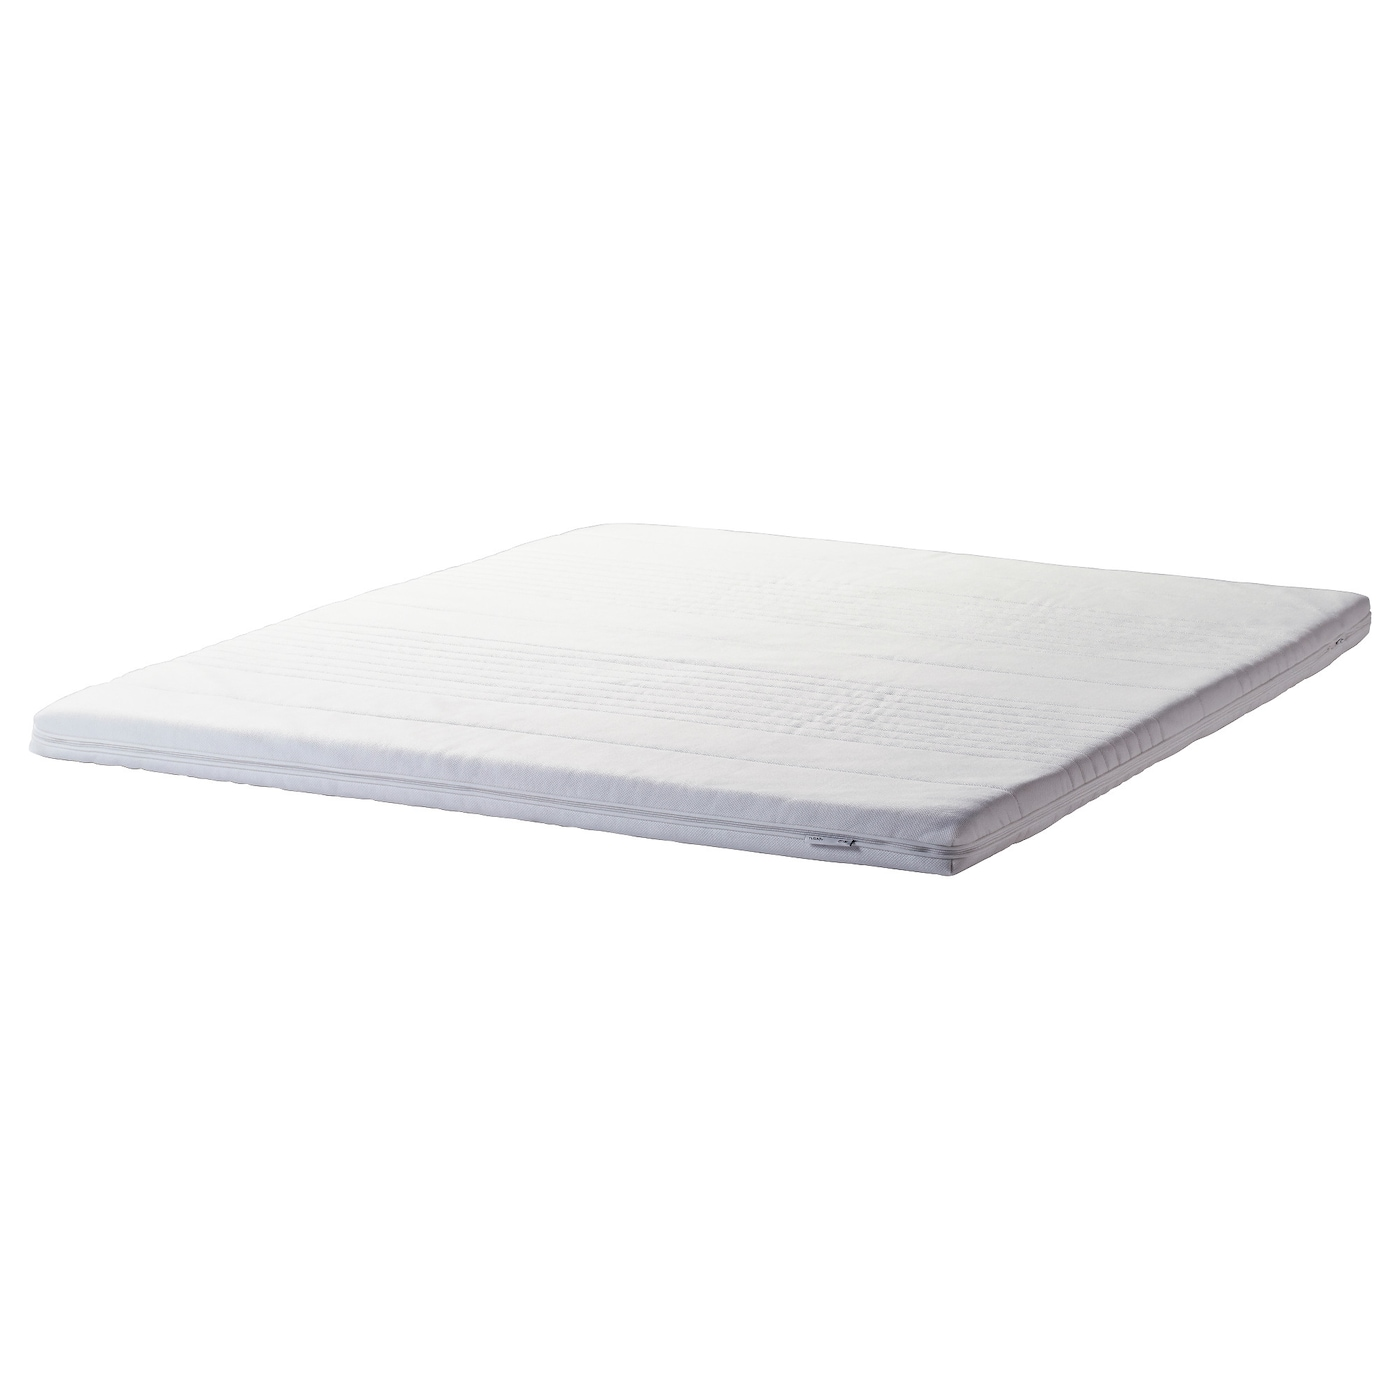 IKEA TUSSÖY mattress topper Easy to bring home since it is roll packed.